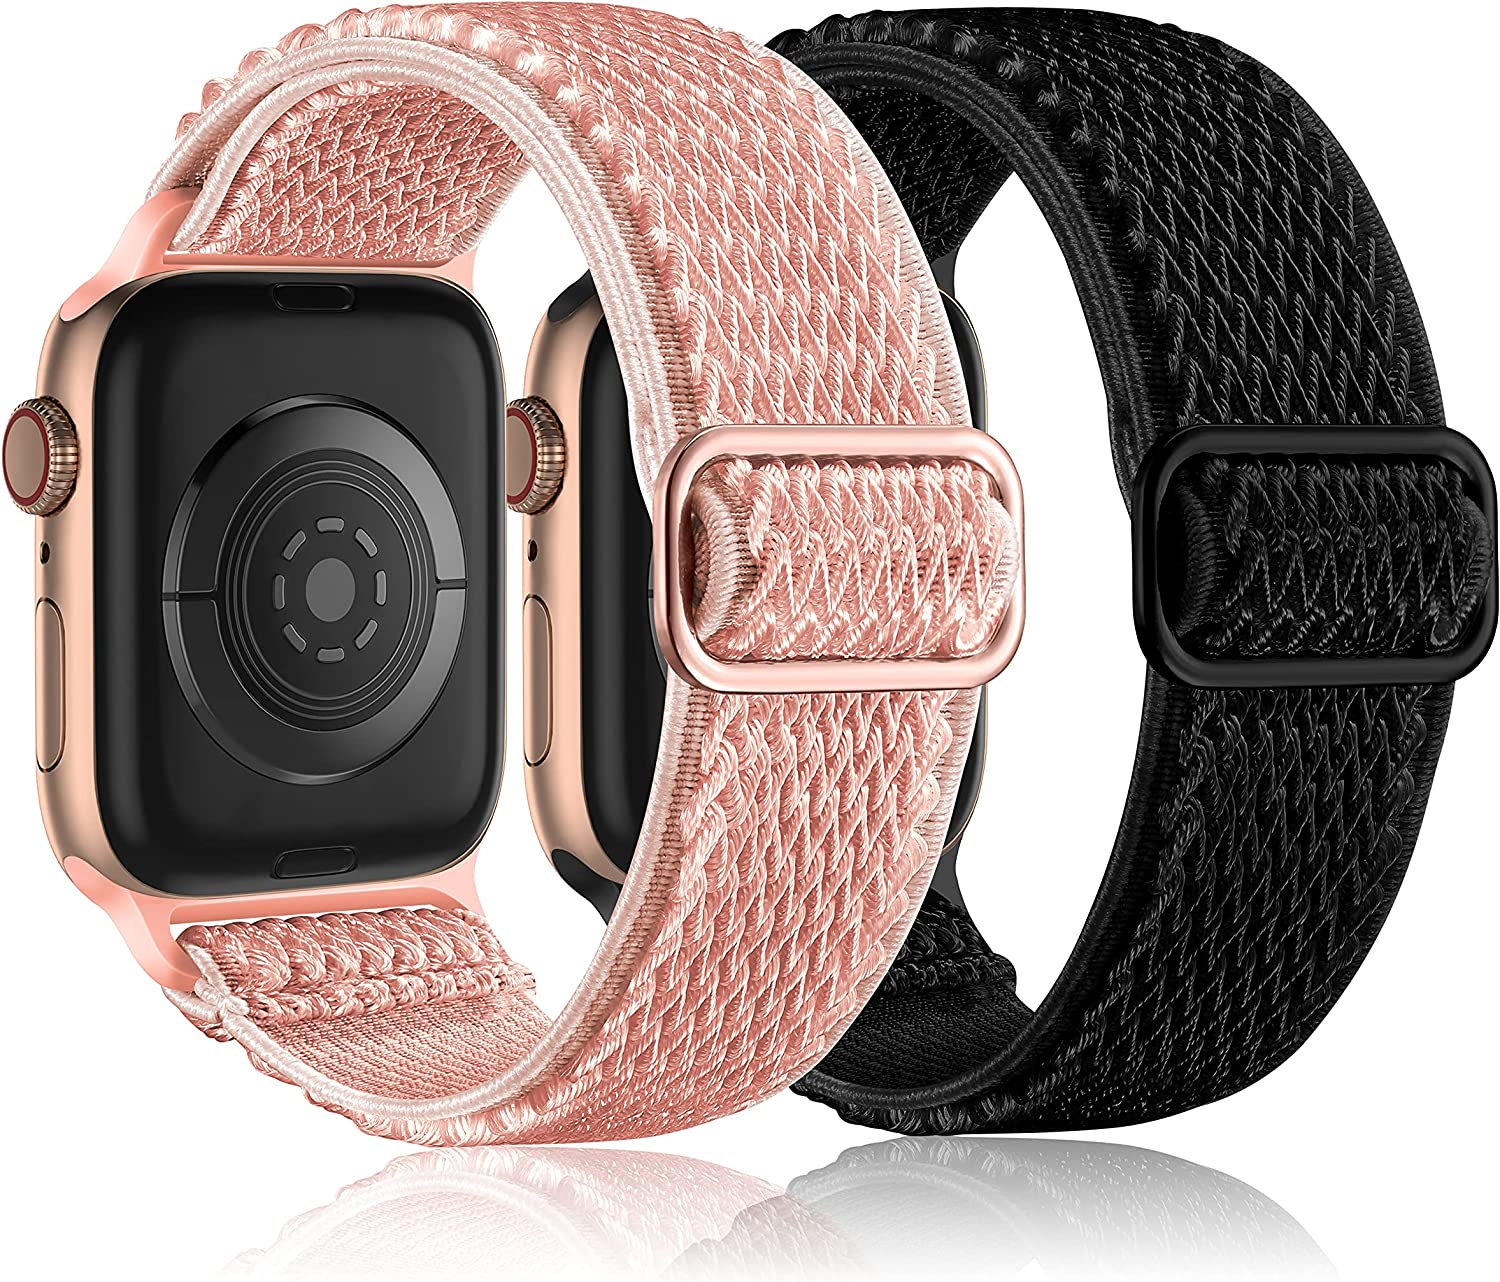 Witzon 2 Pack Compatible with Apple Watch Band 40mm 38mm 42mm 44mm for Women Men, Stretchy Solo Loop Strap Adjustable Nylon Elastic Sport Wrist Bands Designed for iWatch Series 6/5/4/3/2/1